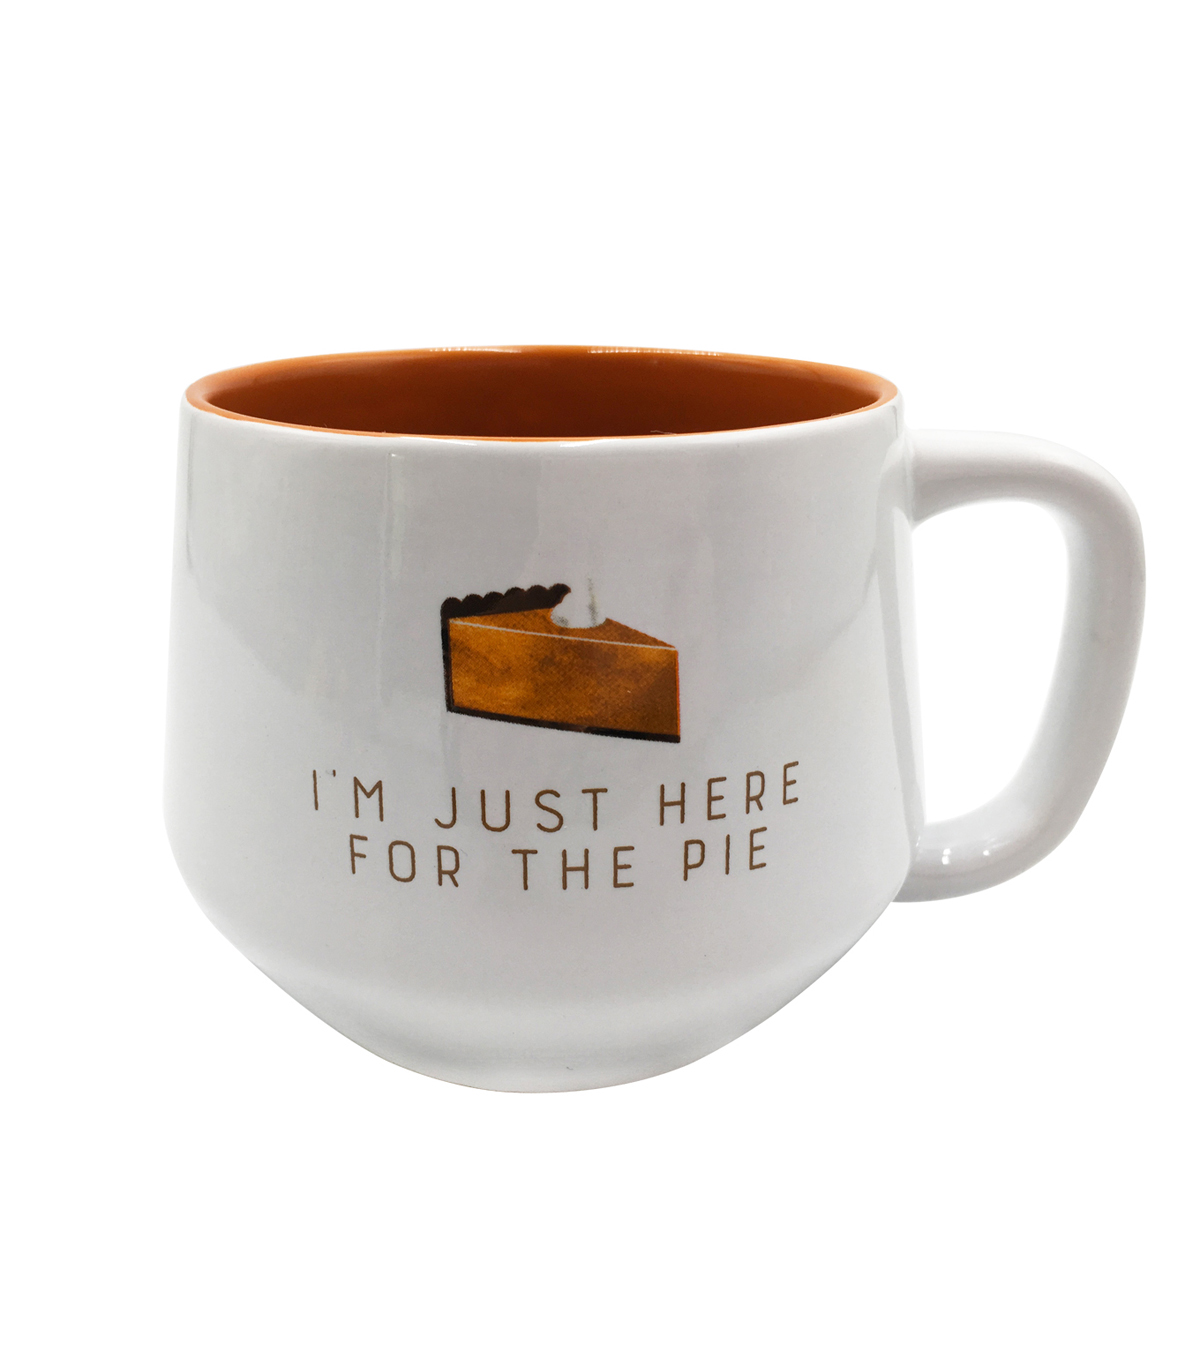 Simply Autumn 16 oz. Mug-I\u0027m Just Here for the Pie on White